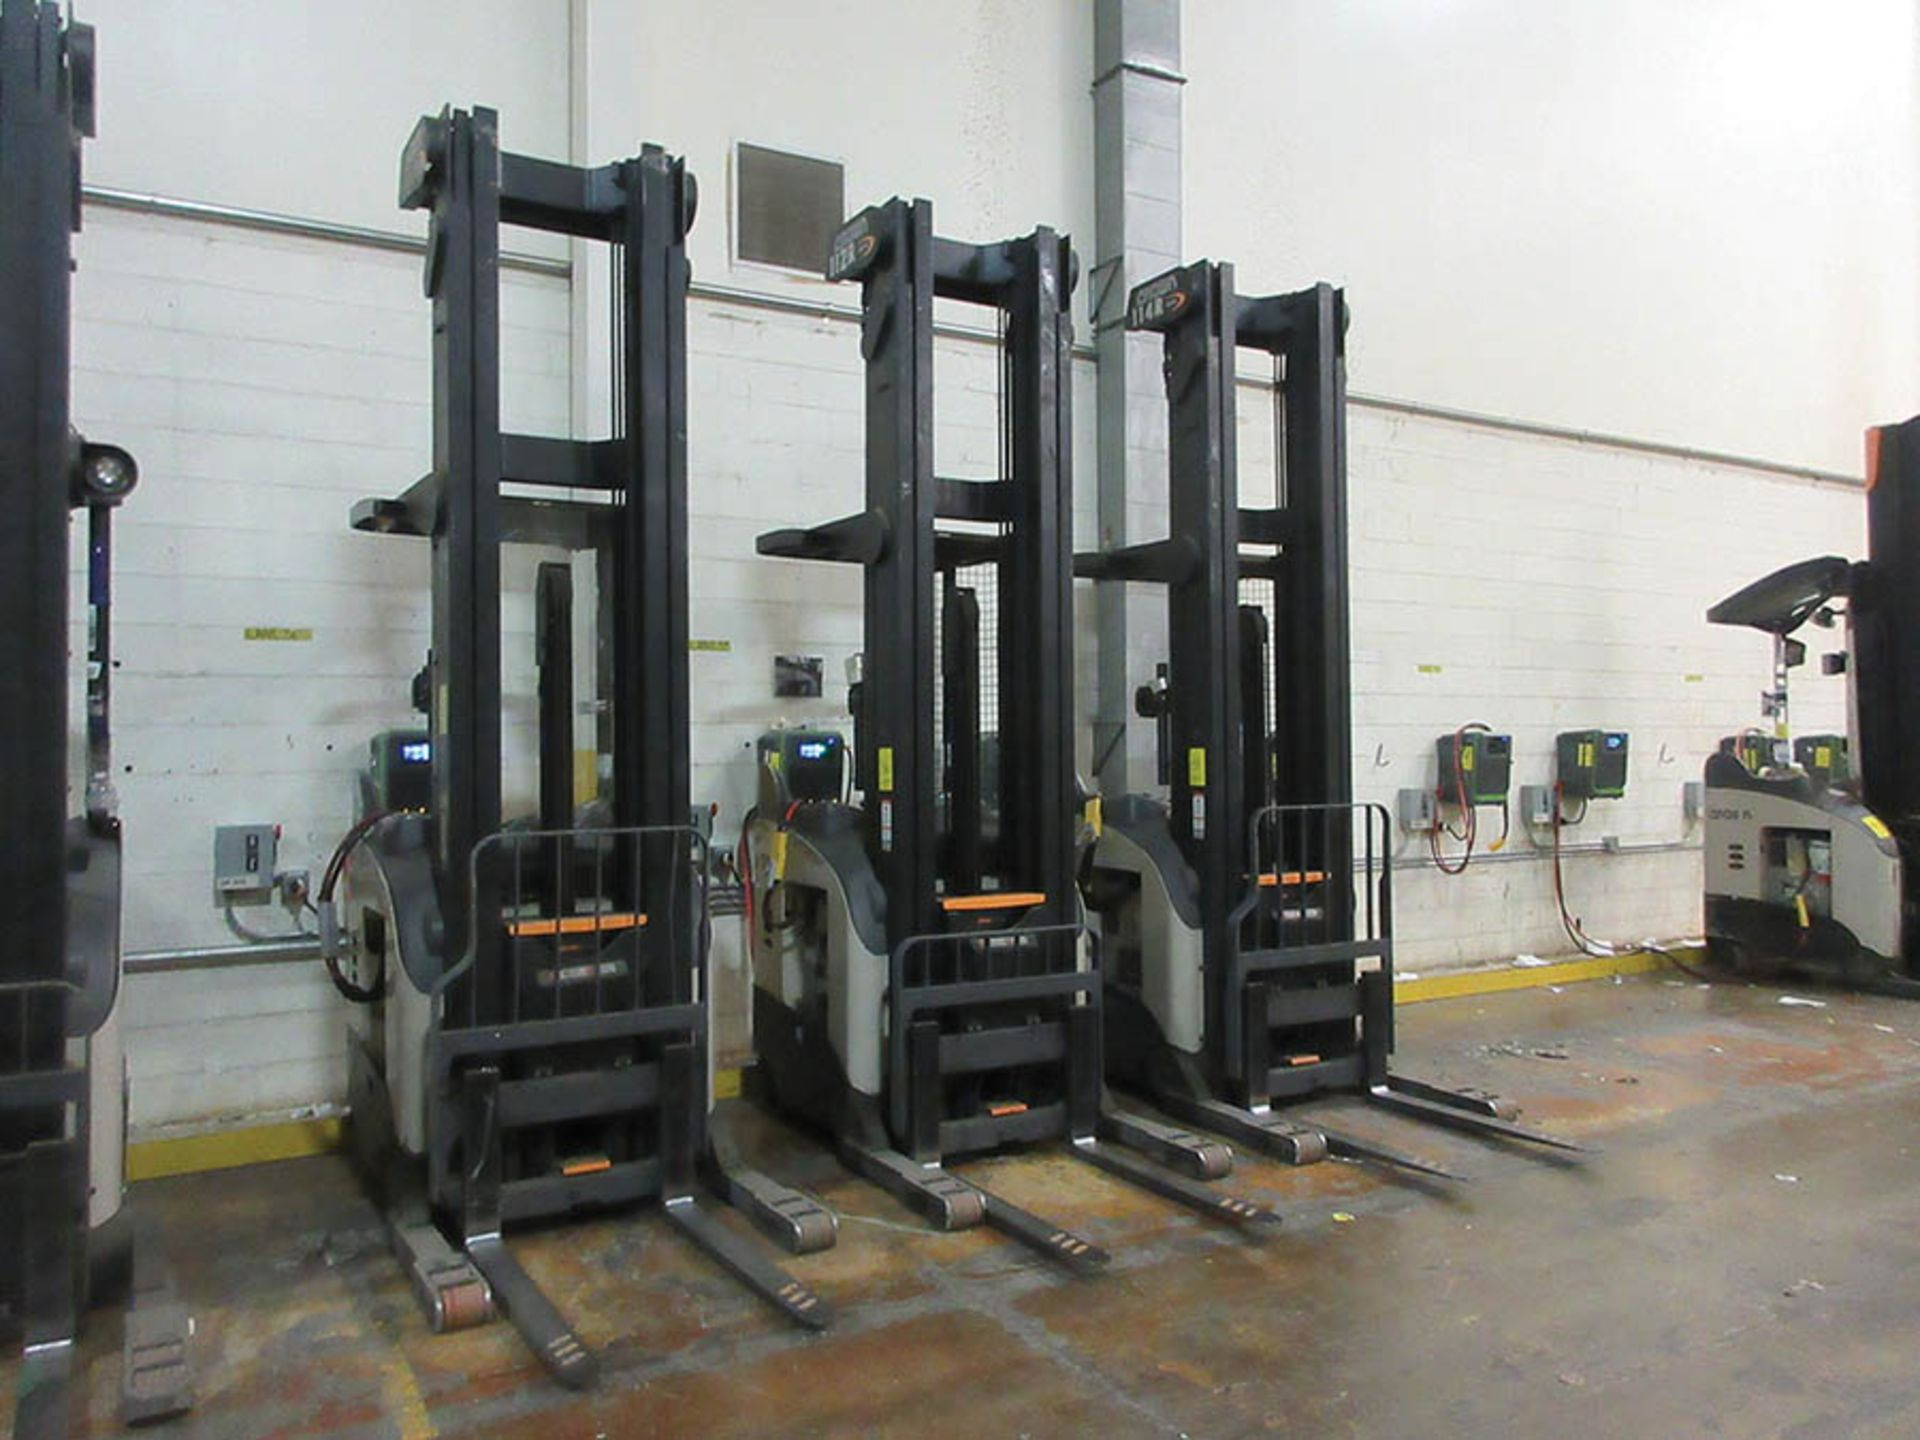 Lot 56 - 2016 CROWN REACH TRUCK, 4,500 LB. CAP., MODEL: RR5725-45, 36V., 140'' MAST COLLAPSED HEIGHT, 321''